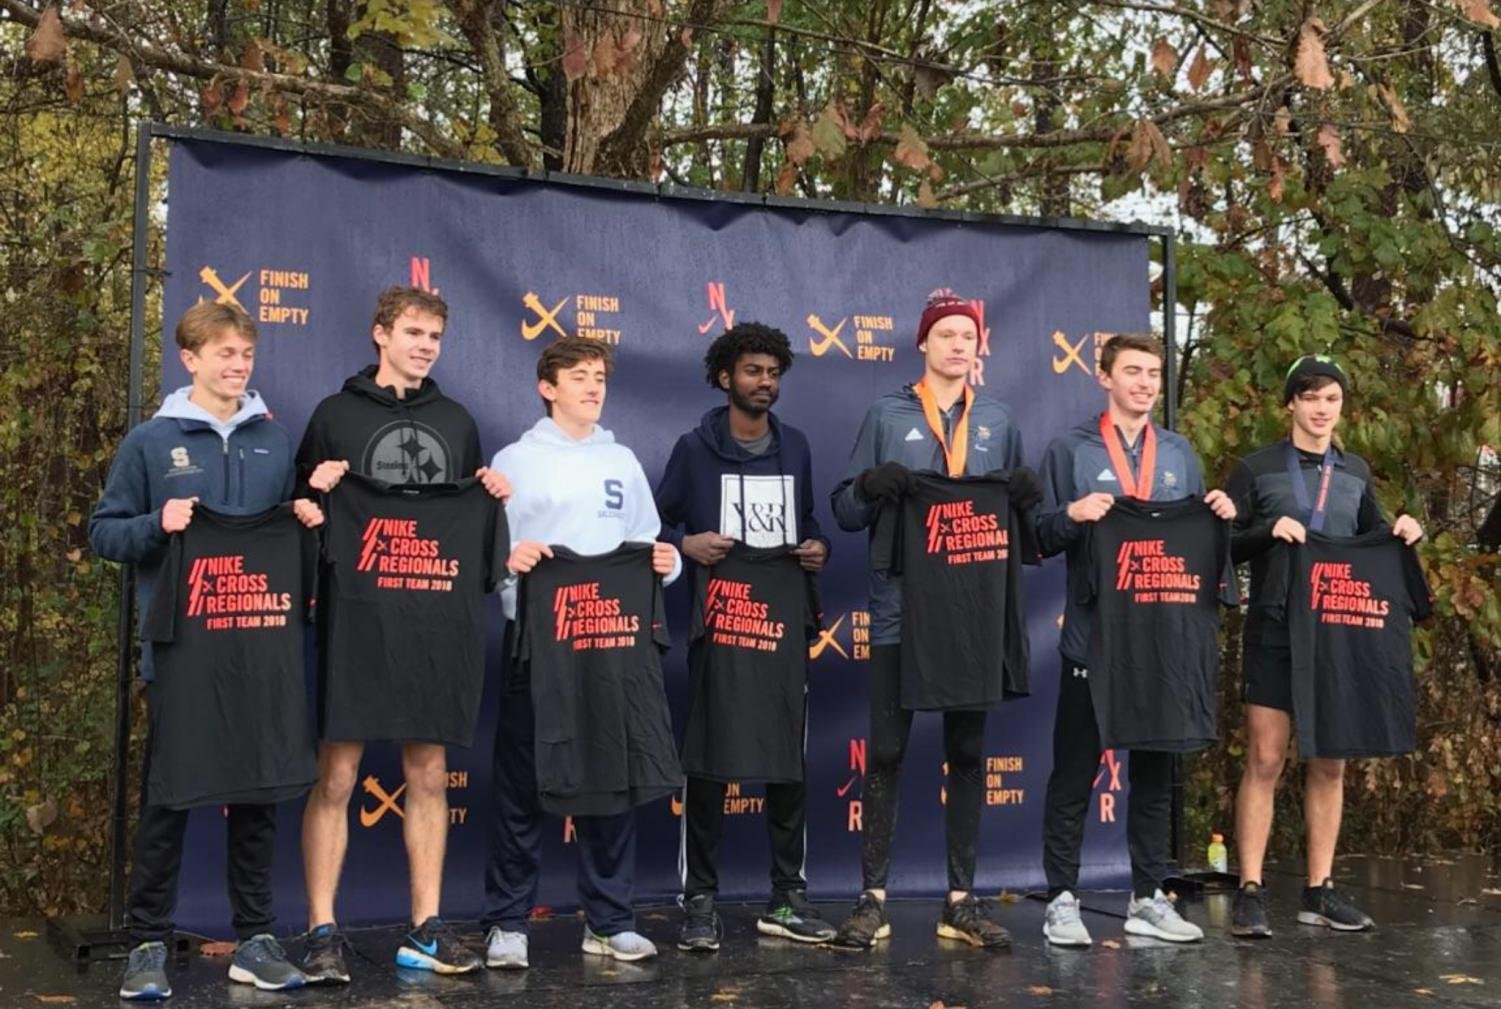 Keehan (third left) and Banko (far left) emerge from North Carolina victorious, ready to show Oregon what Salesianum is made of.